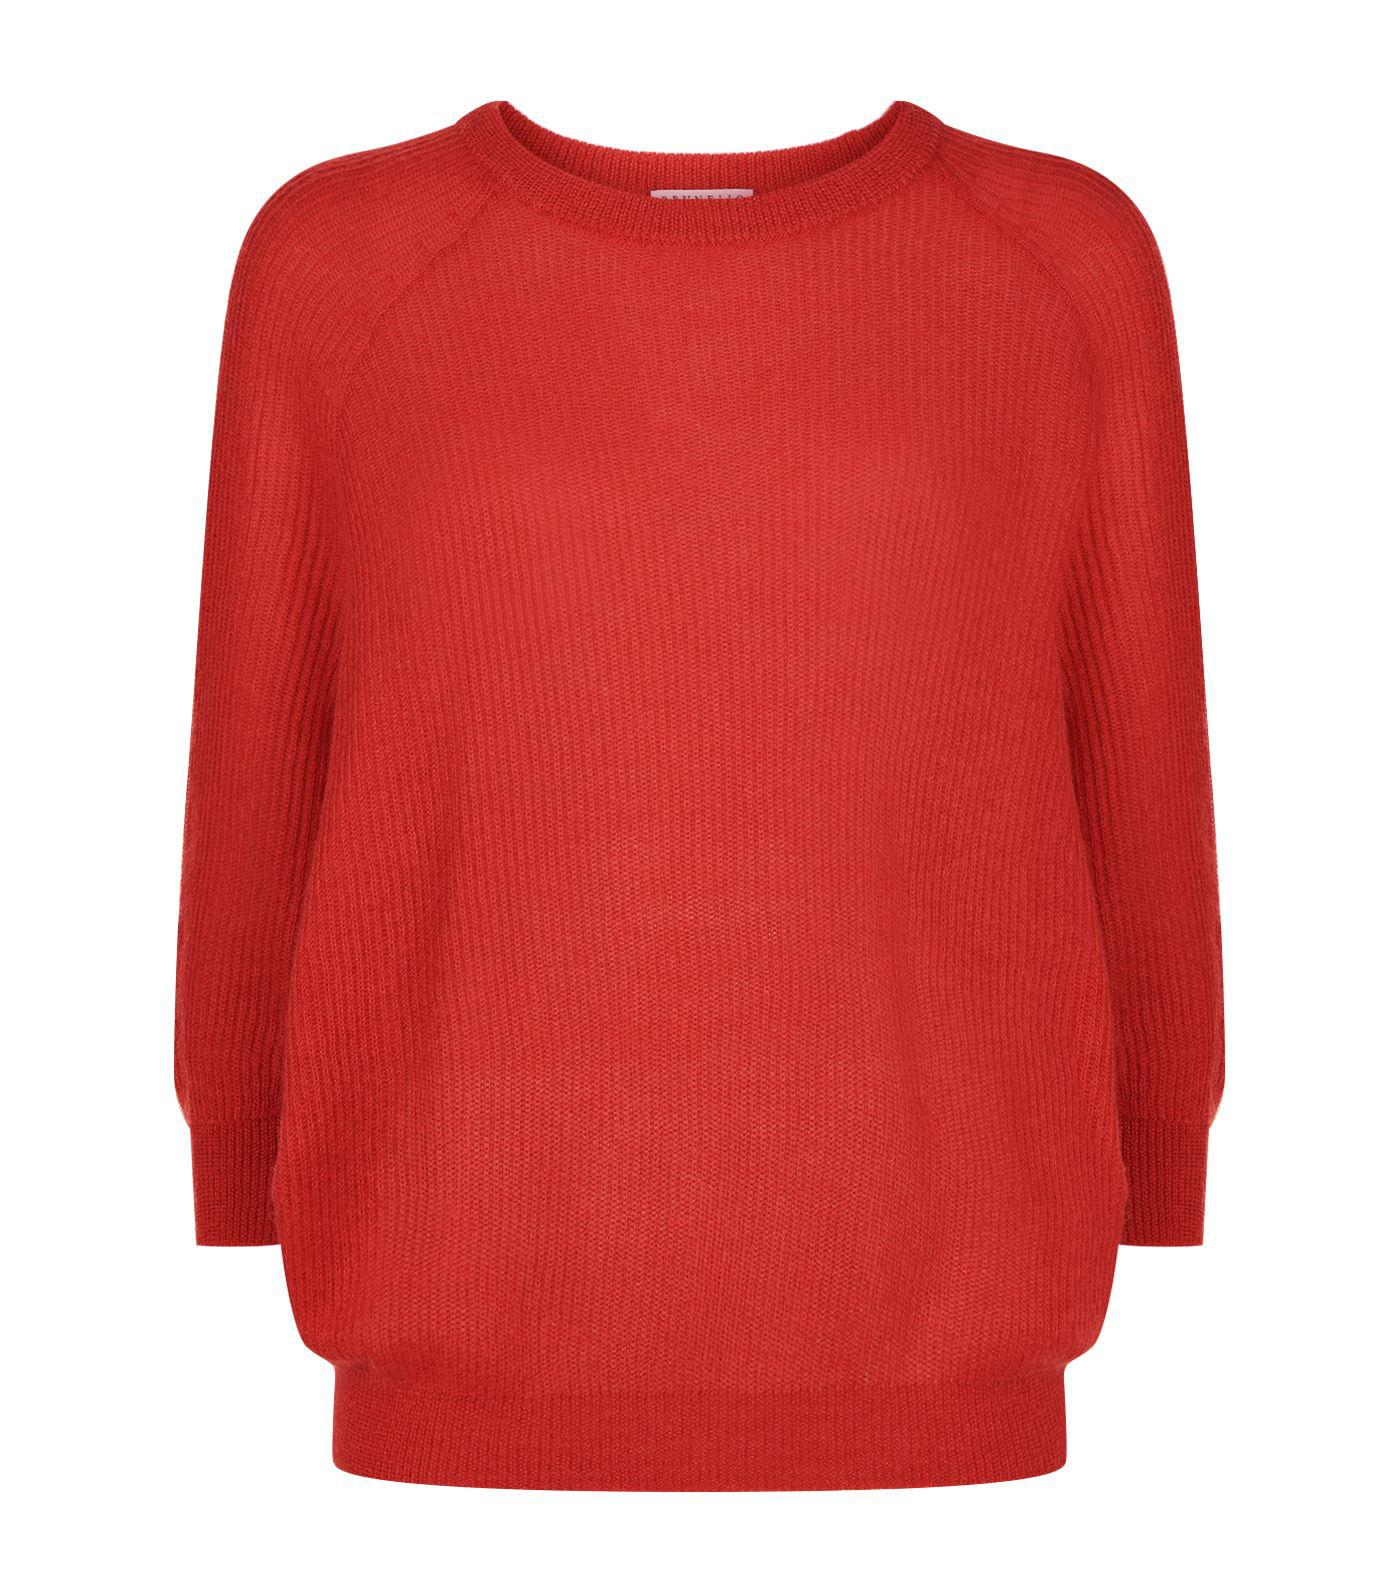 Brunello cucinelli Ribbed Knit V-neck Batwing Sweater in Red | Lyst